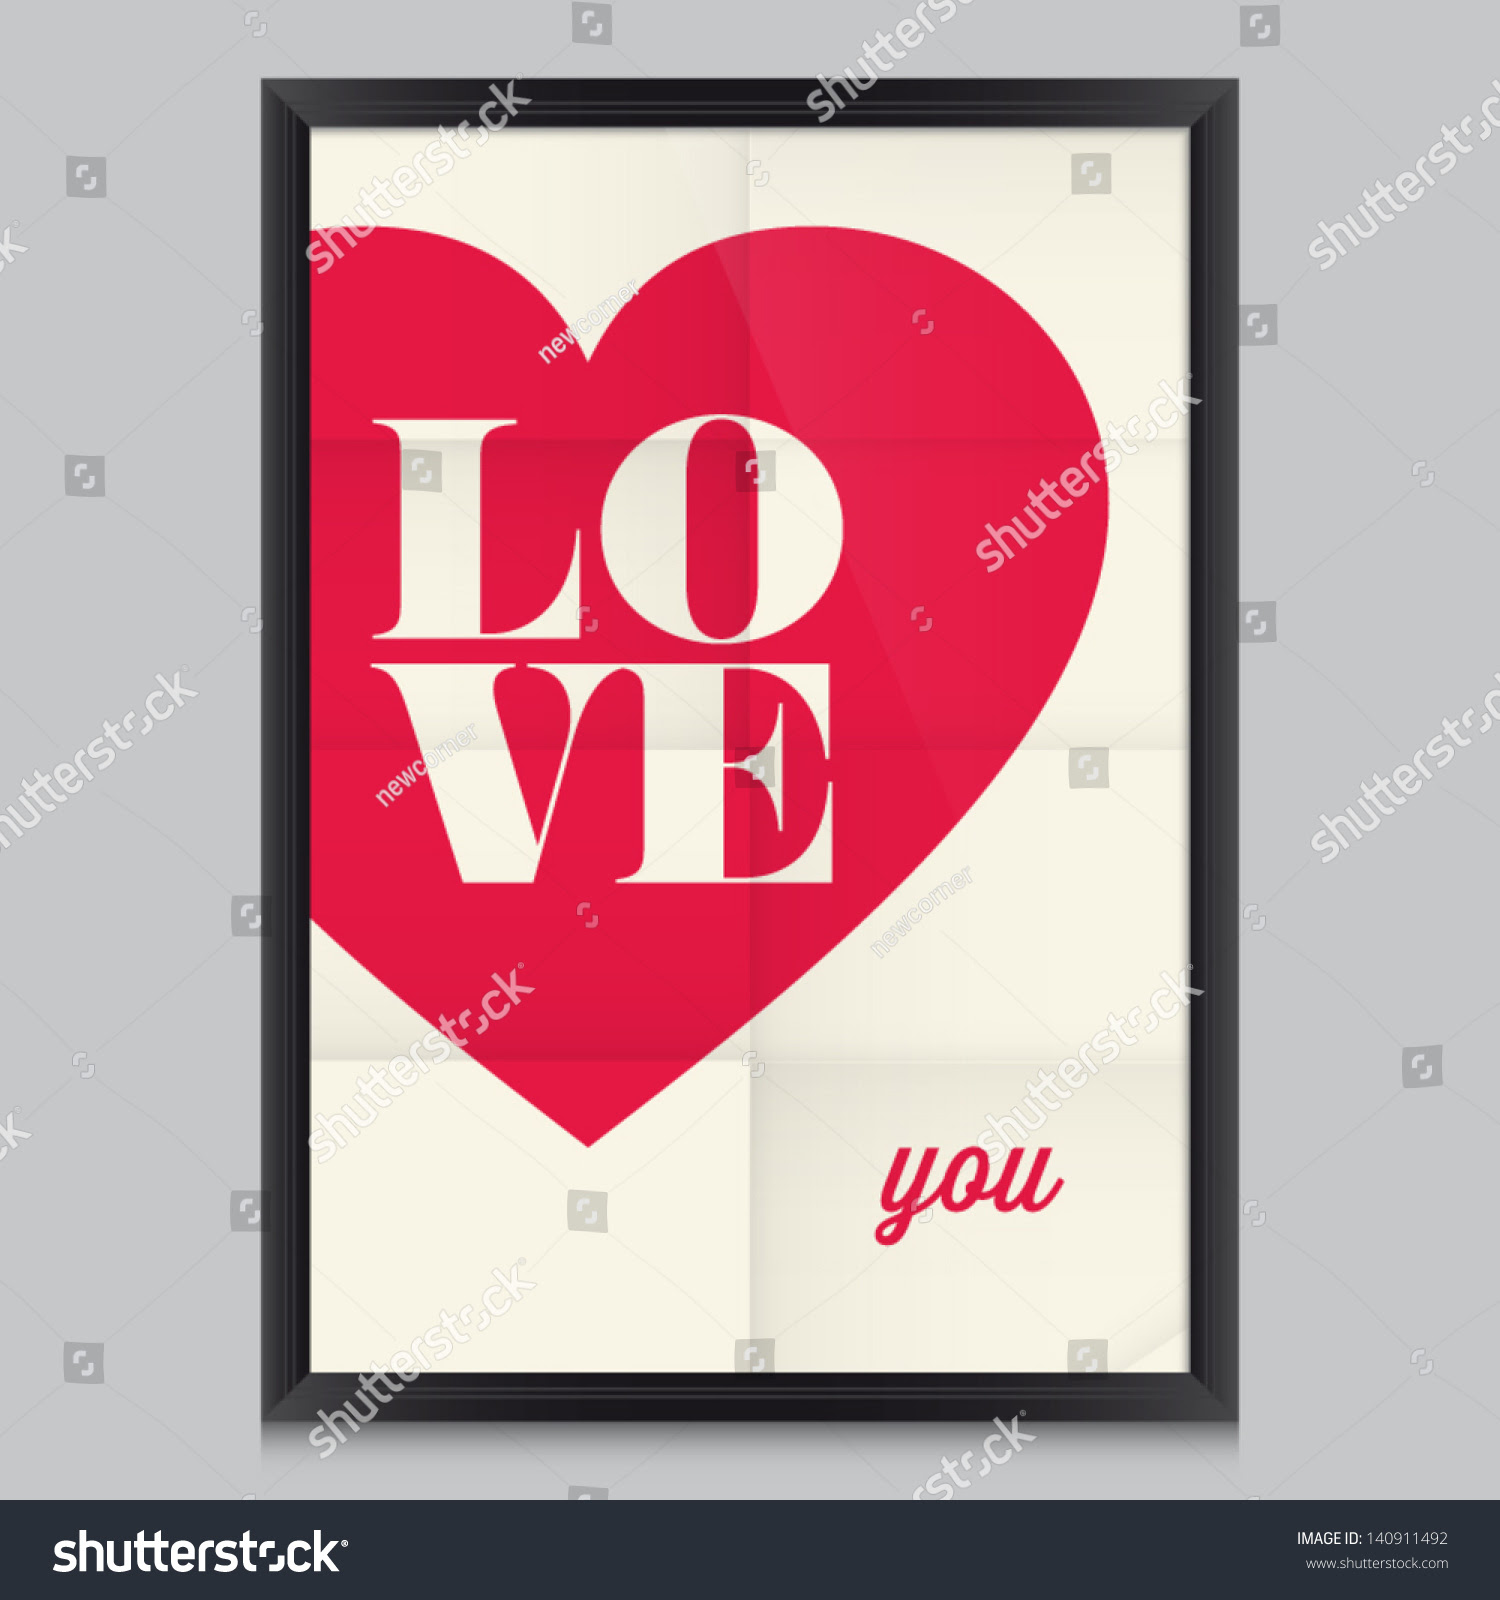 Love Quote Poster Effects Poster Frame Stock Vector 140911492 ...